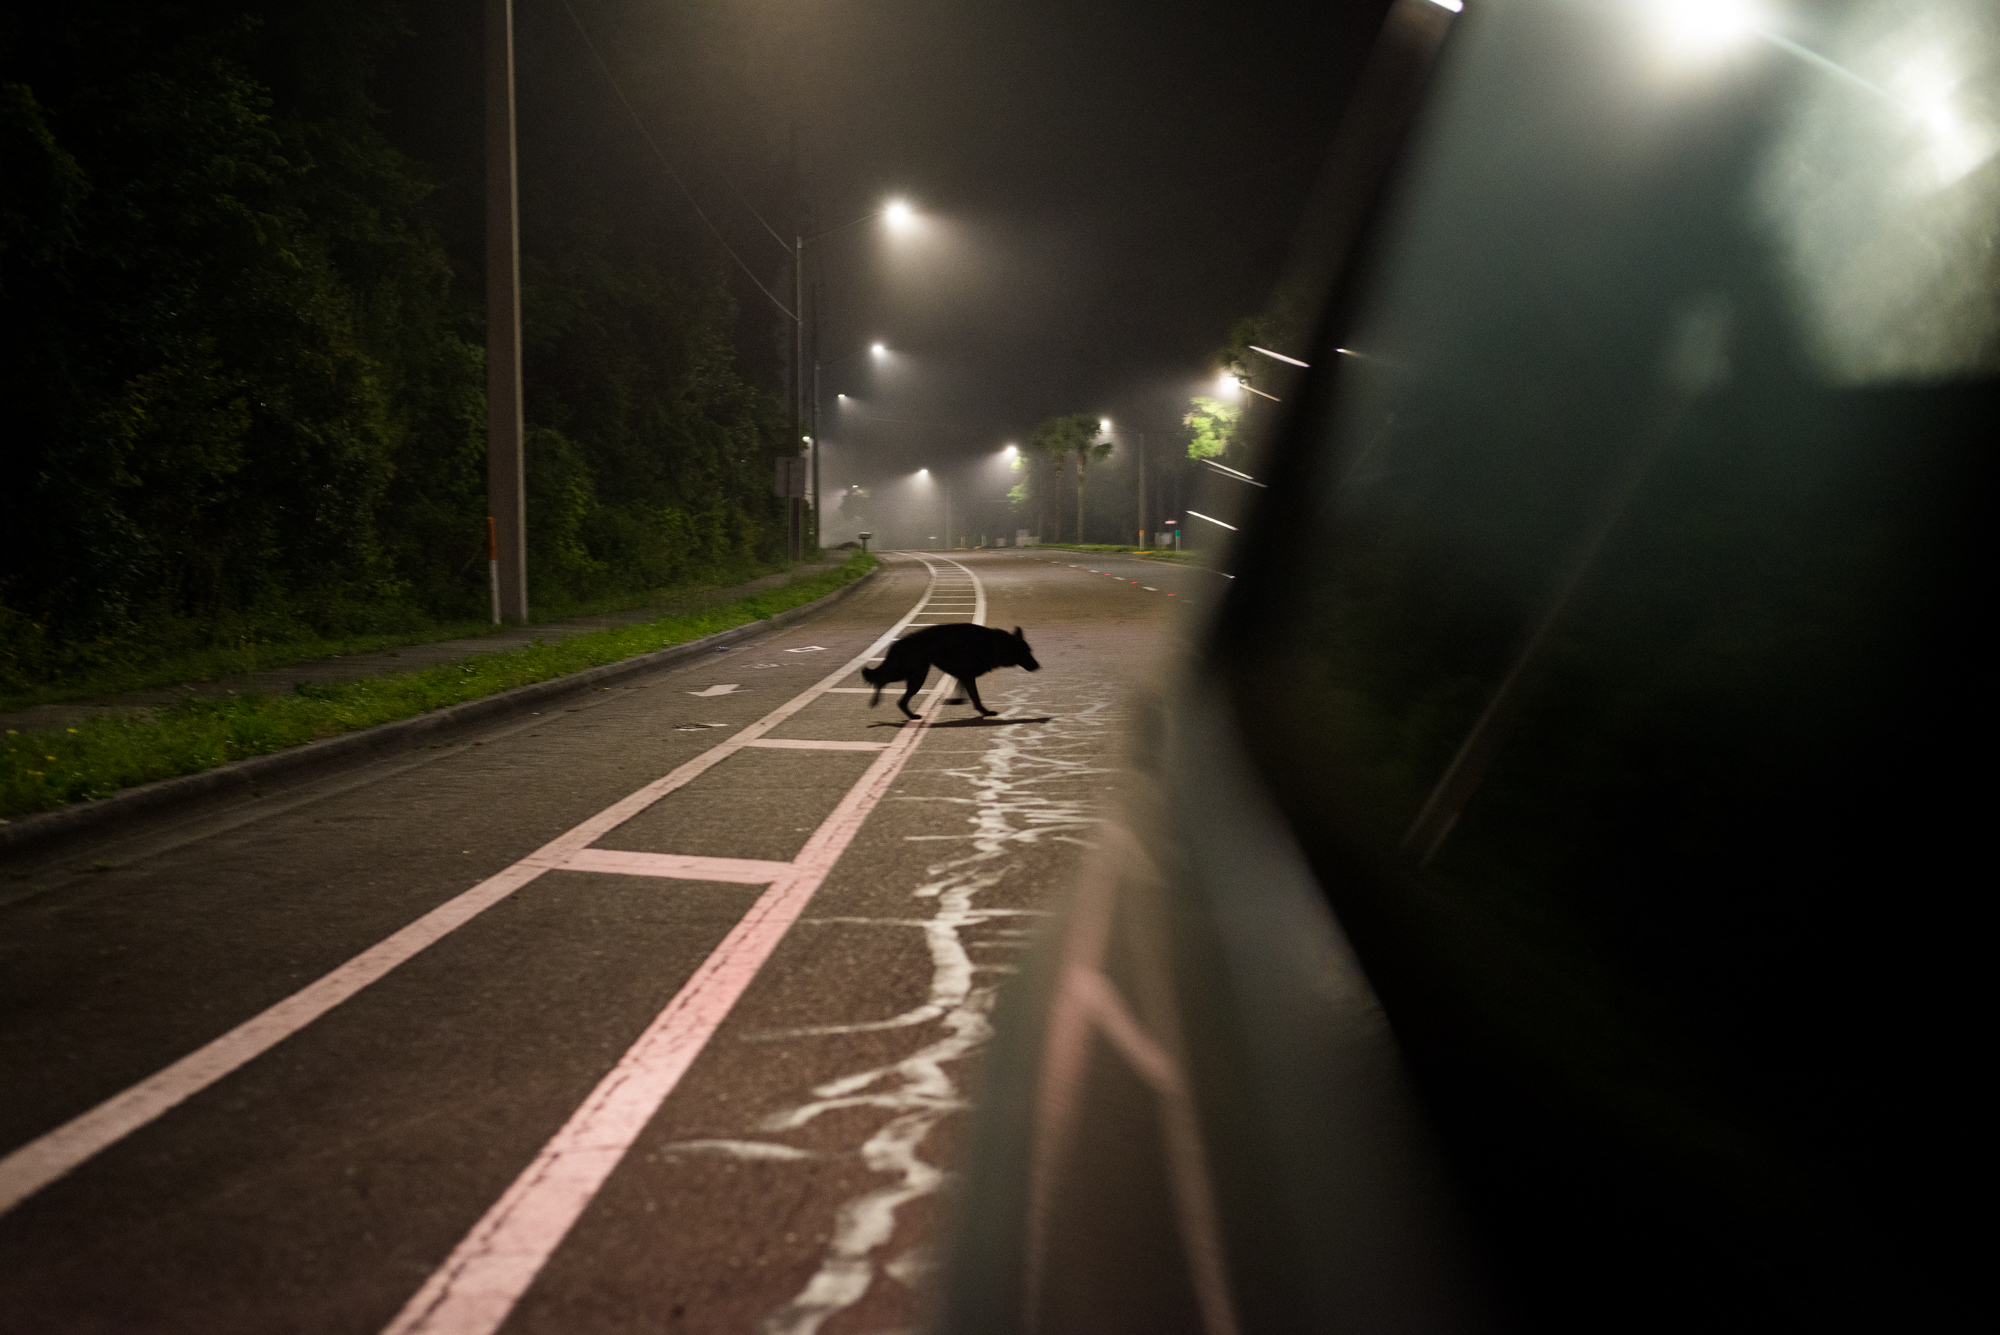 The antithesis of the image above, a dog lurking in the road behind the car poetically symbolizes the passing of an age.